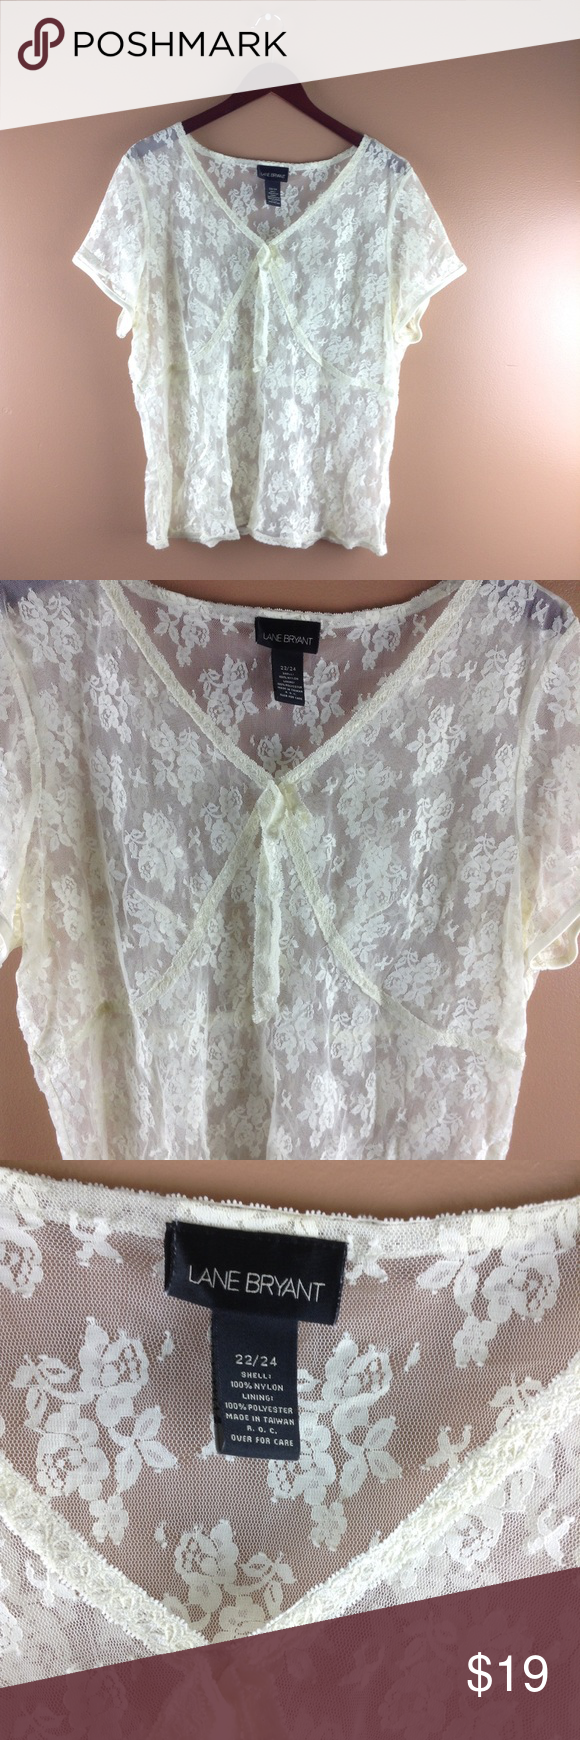 Lane Bryant Lace Top Adorable lace top by Lane Bryant in size 22/24.  Like new condition.  🌵 Add to a bundle for an automatic discount or make an offer.  💕 If you bundle tour likes together I can send you a private discounted offer, just let me know! Lane Bryant Tops Blouses